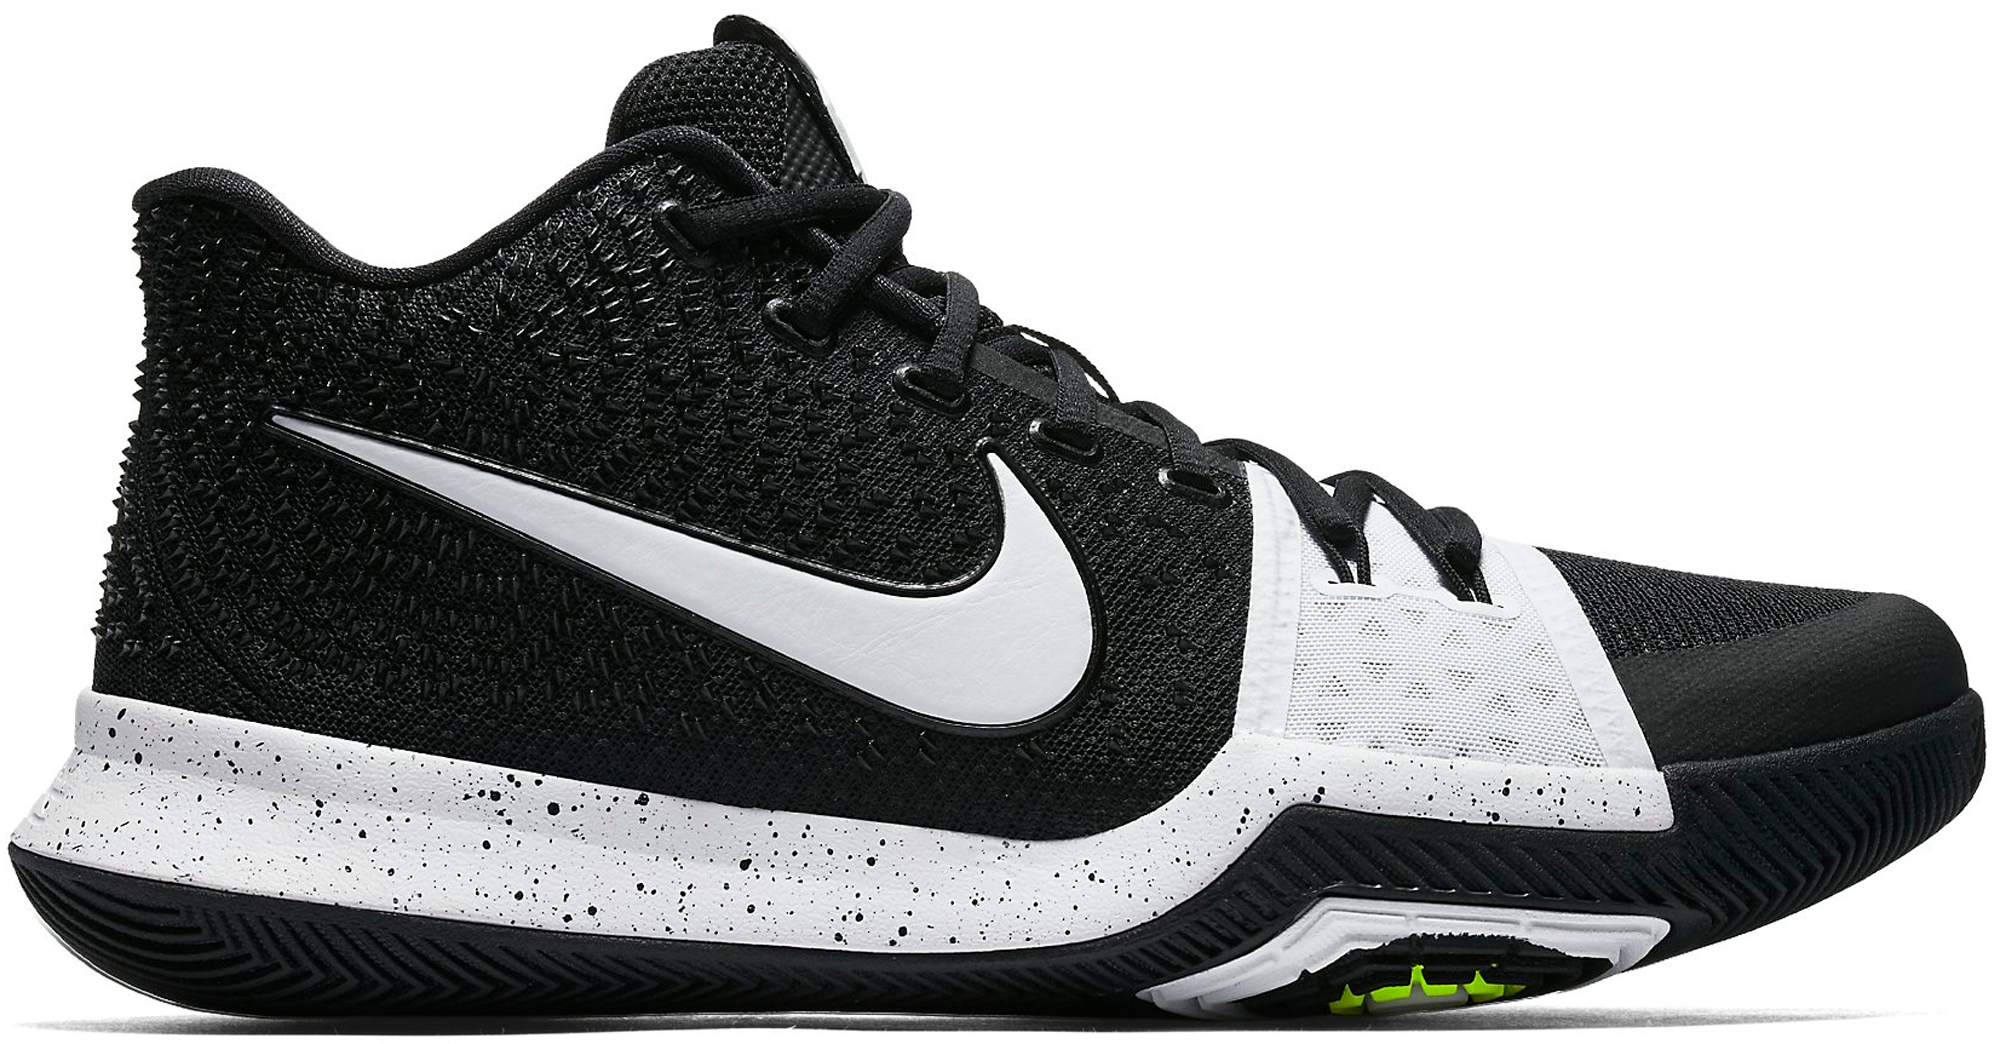 new product f2d32 0ca75 Nike Kyrie 3 TB Black White - StockX News